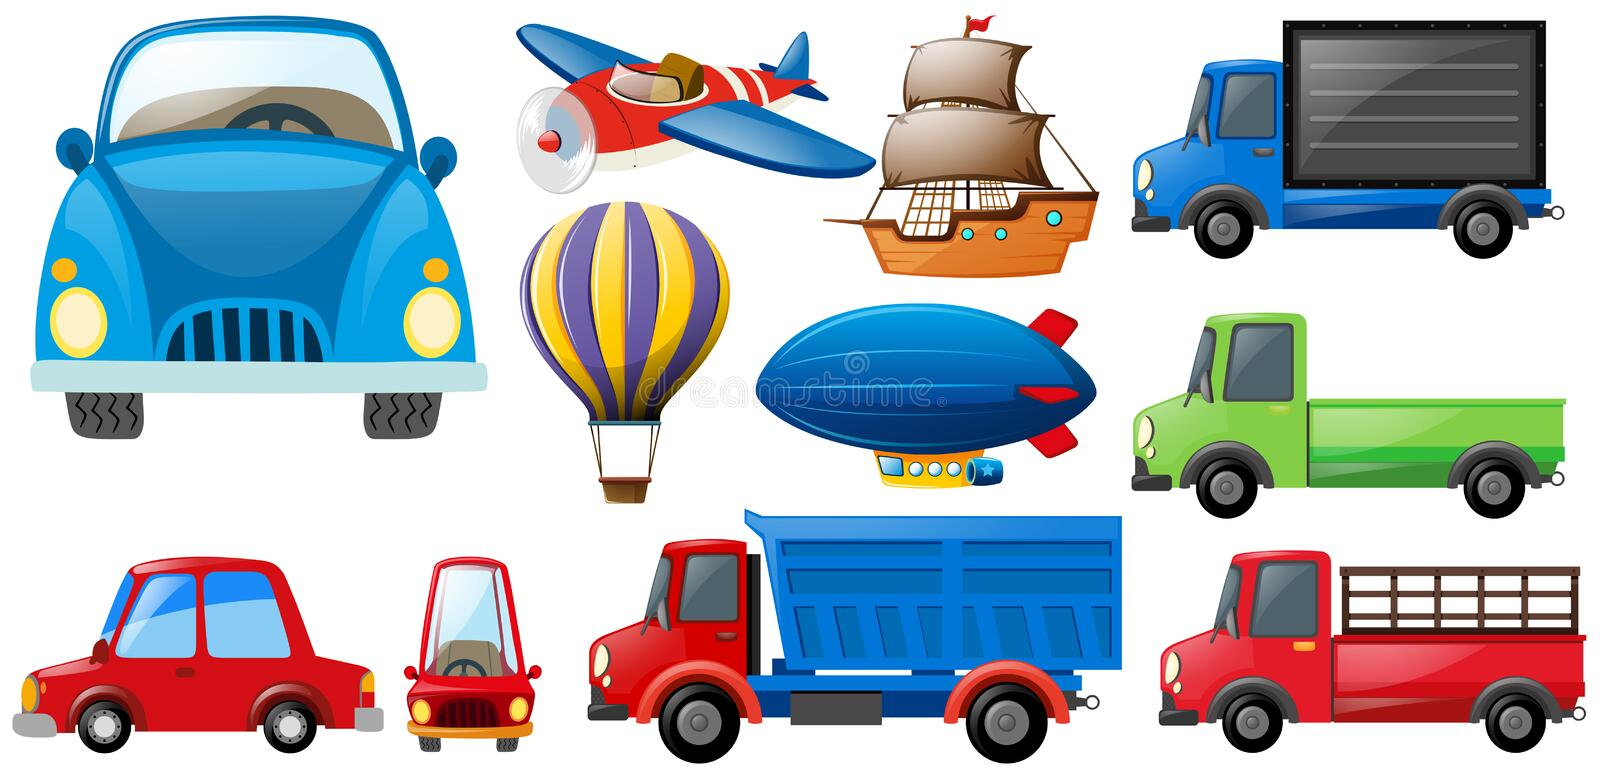 Different kinds of transportations royalty free illustration